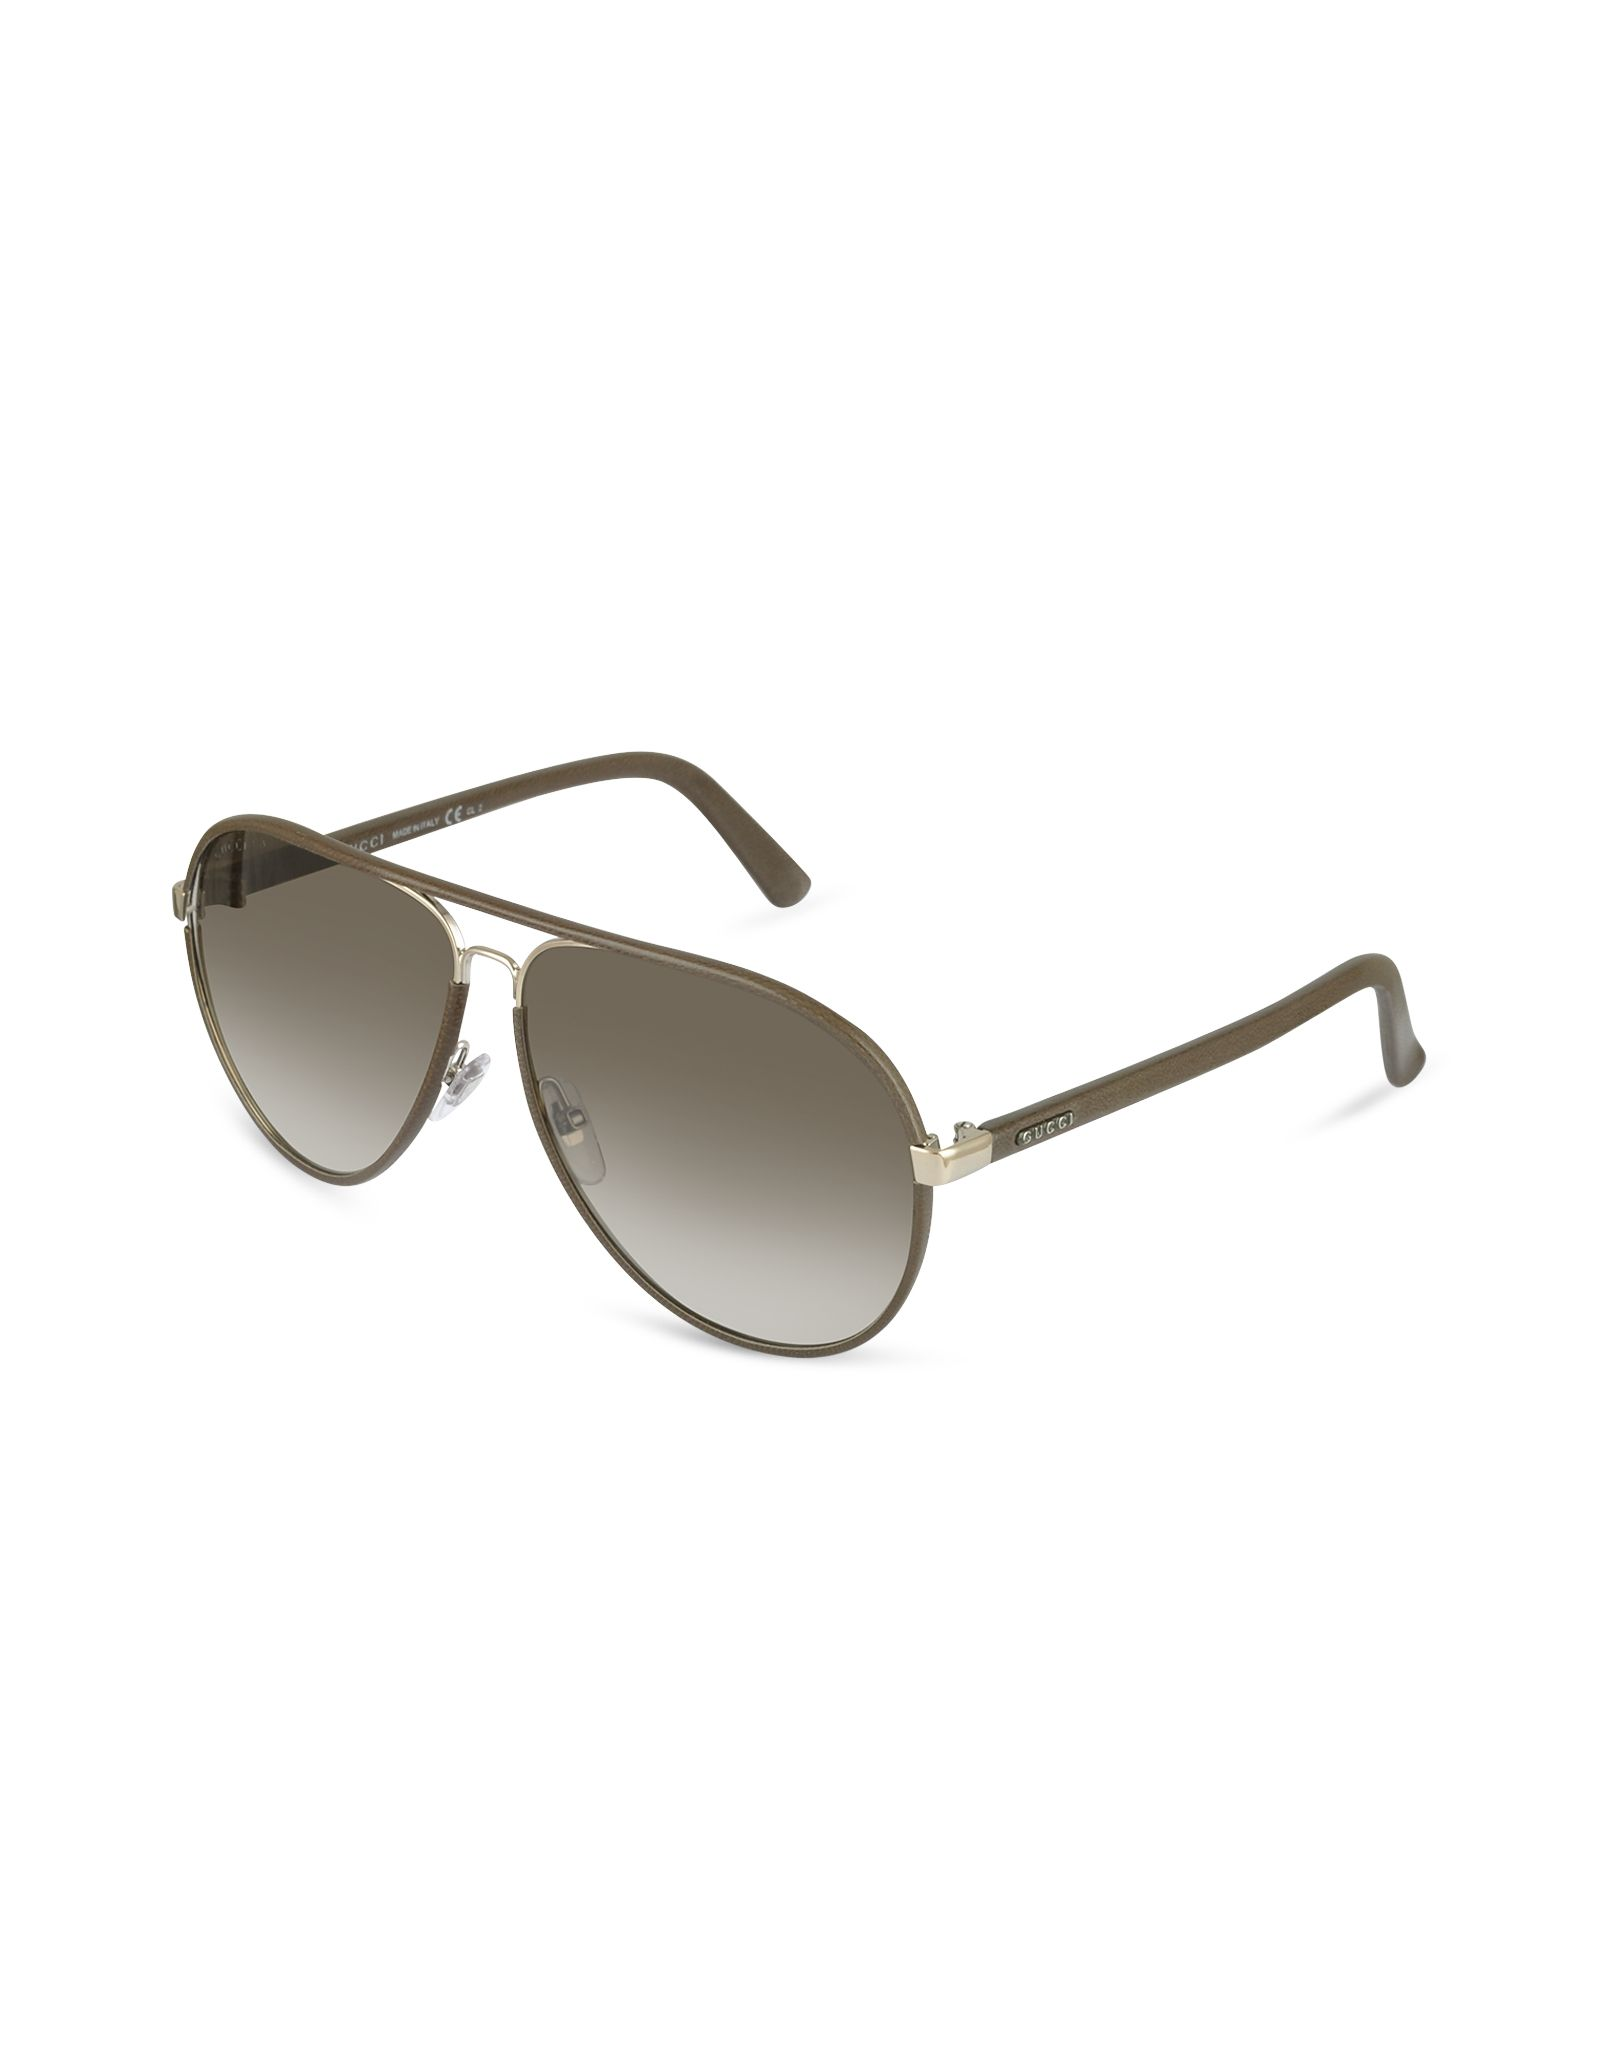 9e2ad0bb4a0 Gucci Men s Logo Leather Aviator Sunglasses